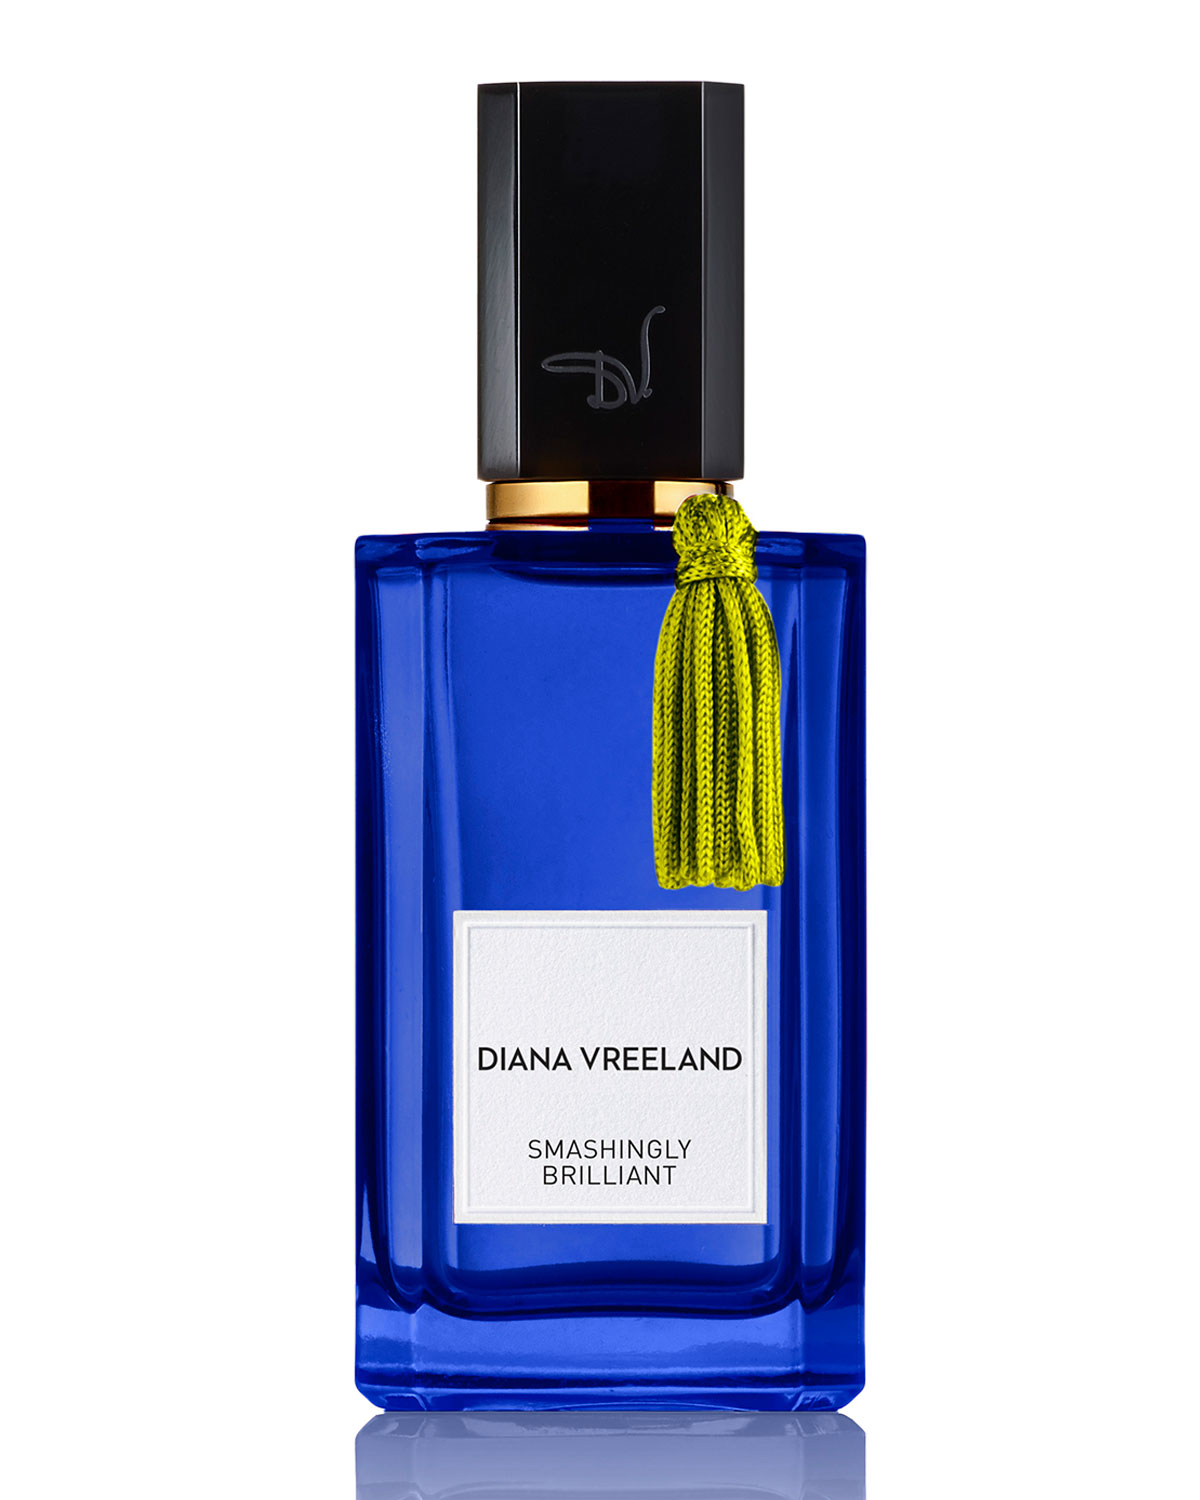 Diana Vreeland 3.4 oz. Smashingly Brilliant Eau de Parfum